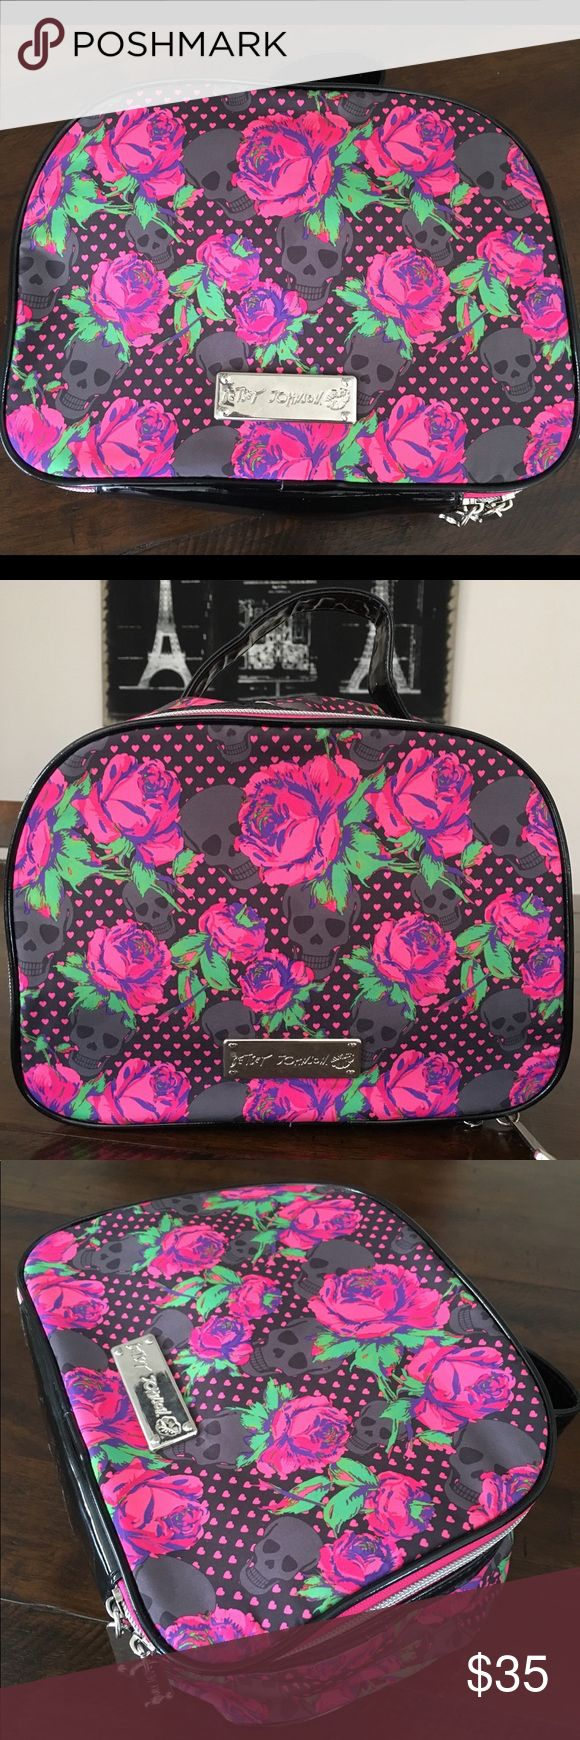 """Betsey Johnson Skulls & Roses Travel Make-Up Bag Grey skulls, pink hearts/roses detail this flirty, Betsey Johnson, zip around closure, single patent leather top handle, measuring 8"""". Patent leather bottom. Lay flat to open and toss in those must have items when traveling and on the go, or as a make-up storage bag. In perfect condition! Zipper functions properly. No rips/stains, inside/out. Bag dimensions:10""""W, 8""""H, 6""""D, 26"""" zip around. When open, bag is capable of expanding 15""""W/14""""H. Carry…"""